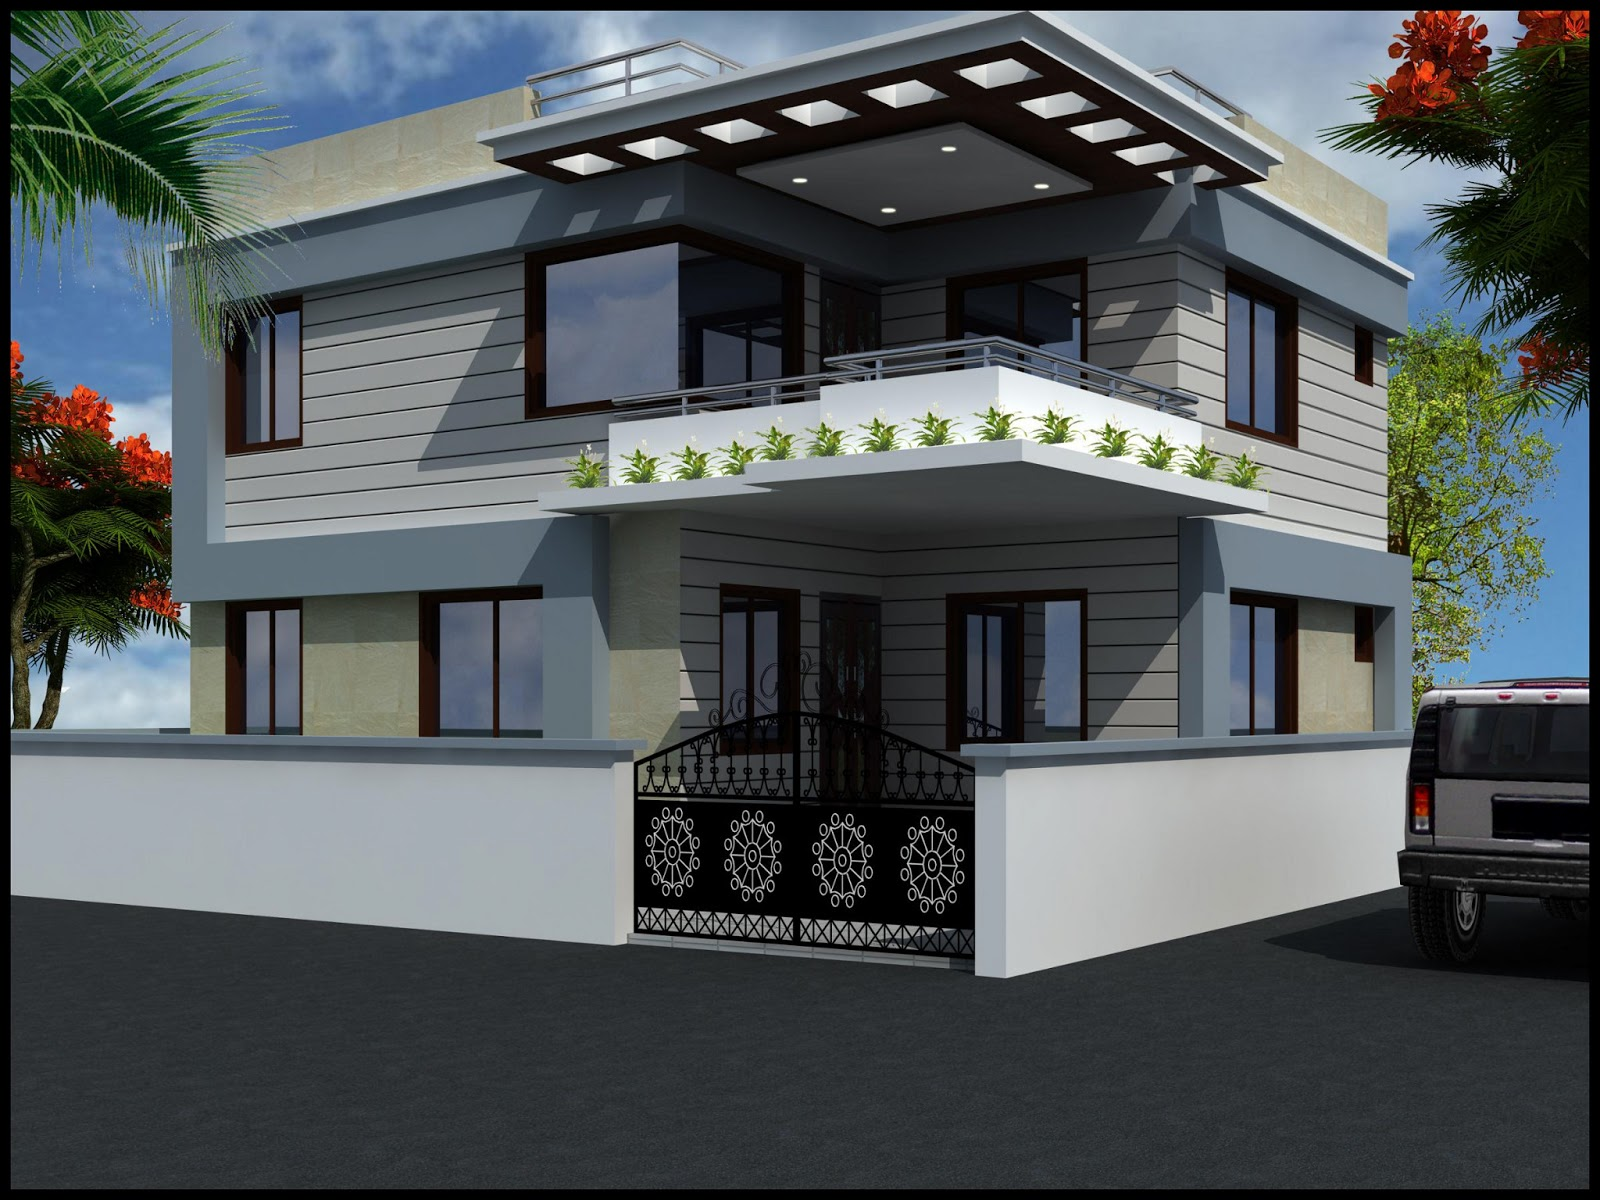 Modern beautiful duplex house design home decorating ideas for Duplex images india